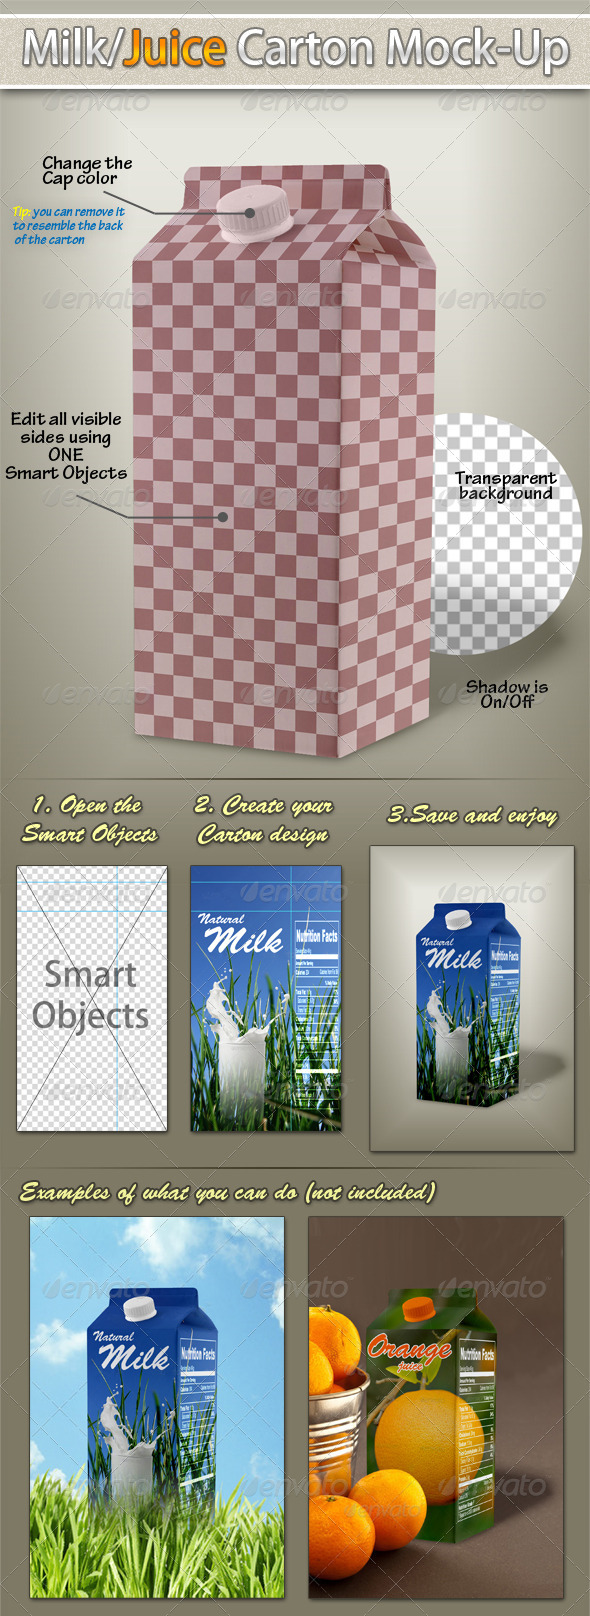 Milk/Juice Carton Mockup - Food and Drink Packaging